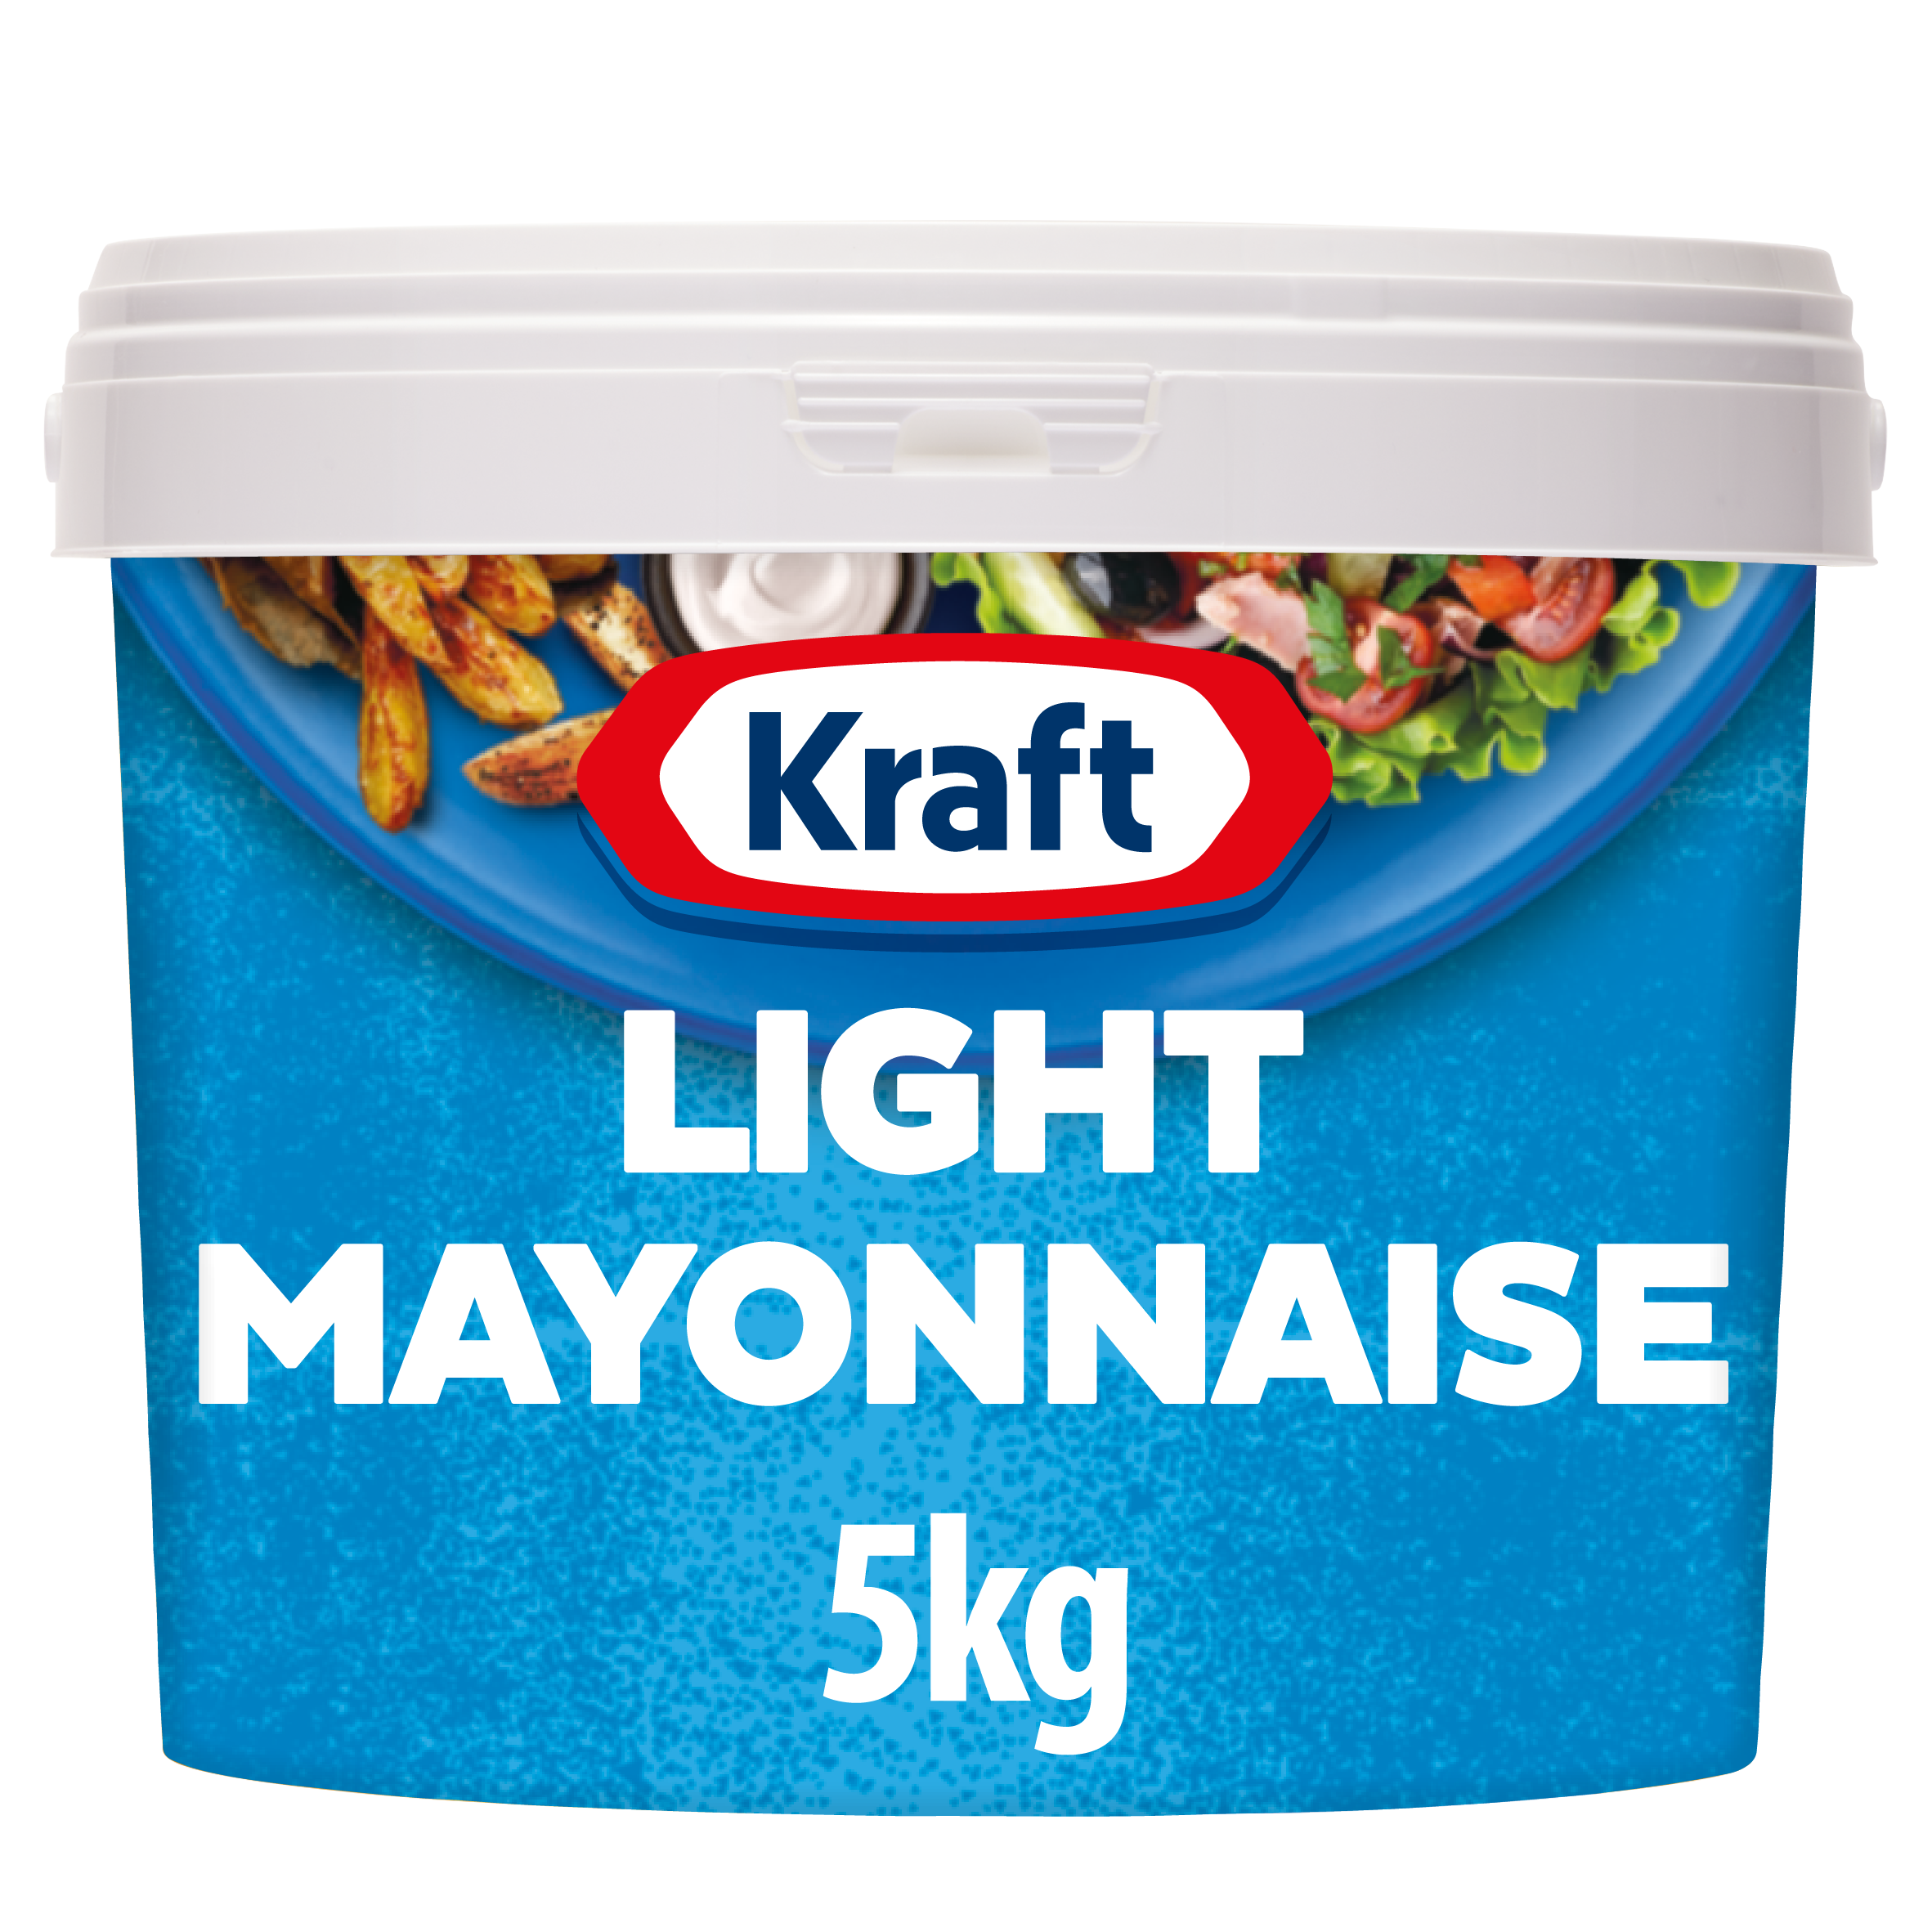 Majonez Light Kraft 5kg wiadro image